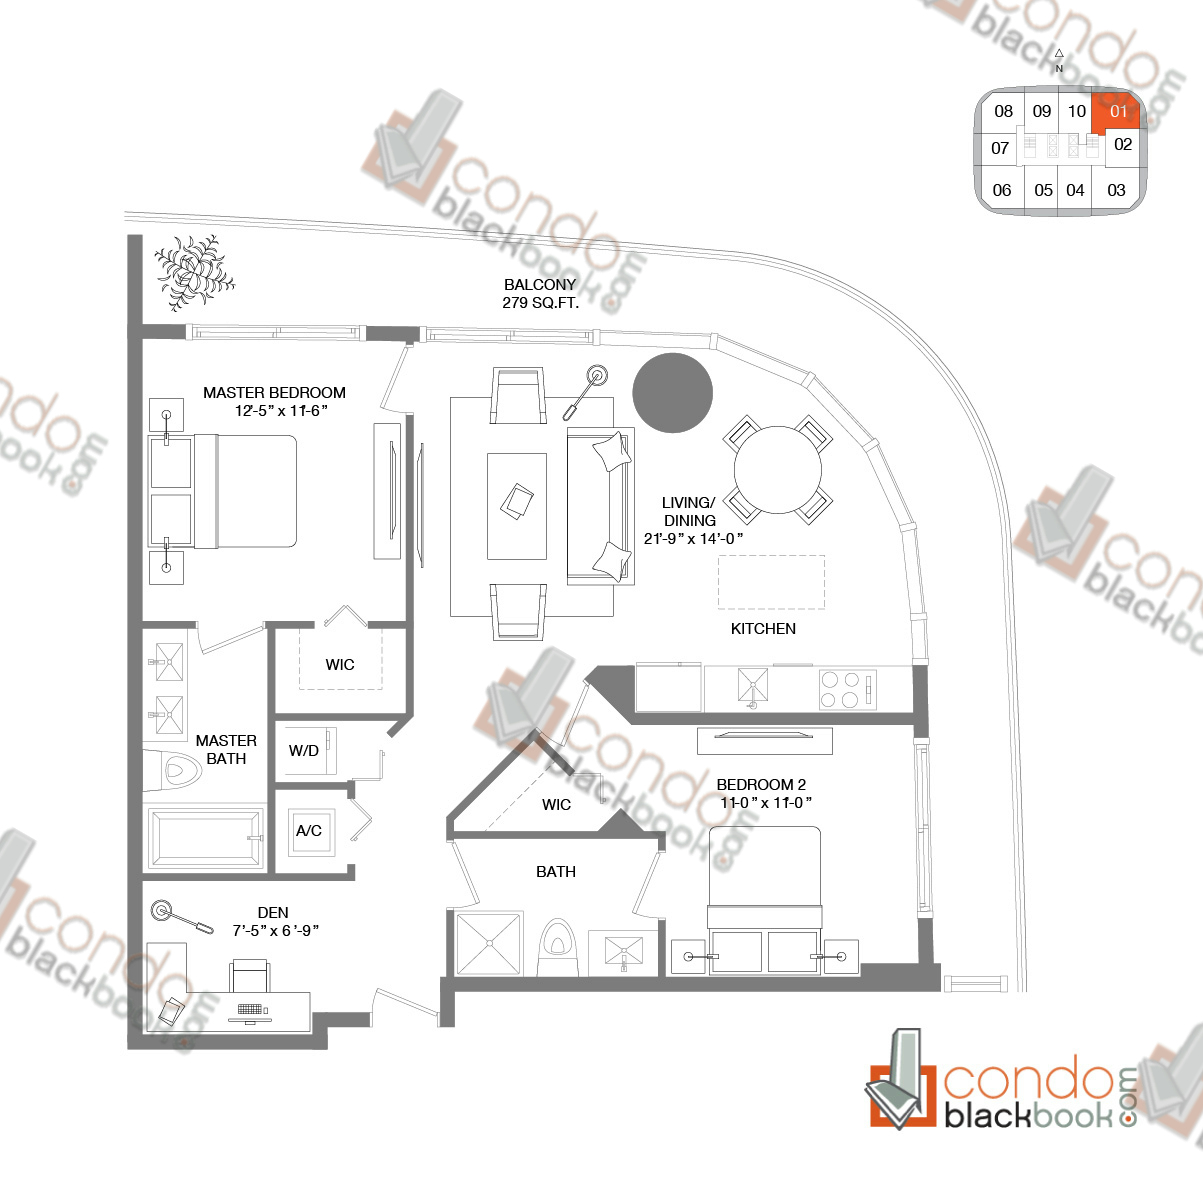 Floor plan for Brickell Heights West Tower Brickell Miami, model RESIDENCE 01, line 01, 2/2+Den bedrooms, 1,040 sq ft